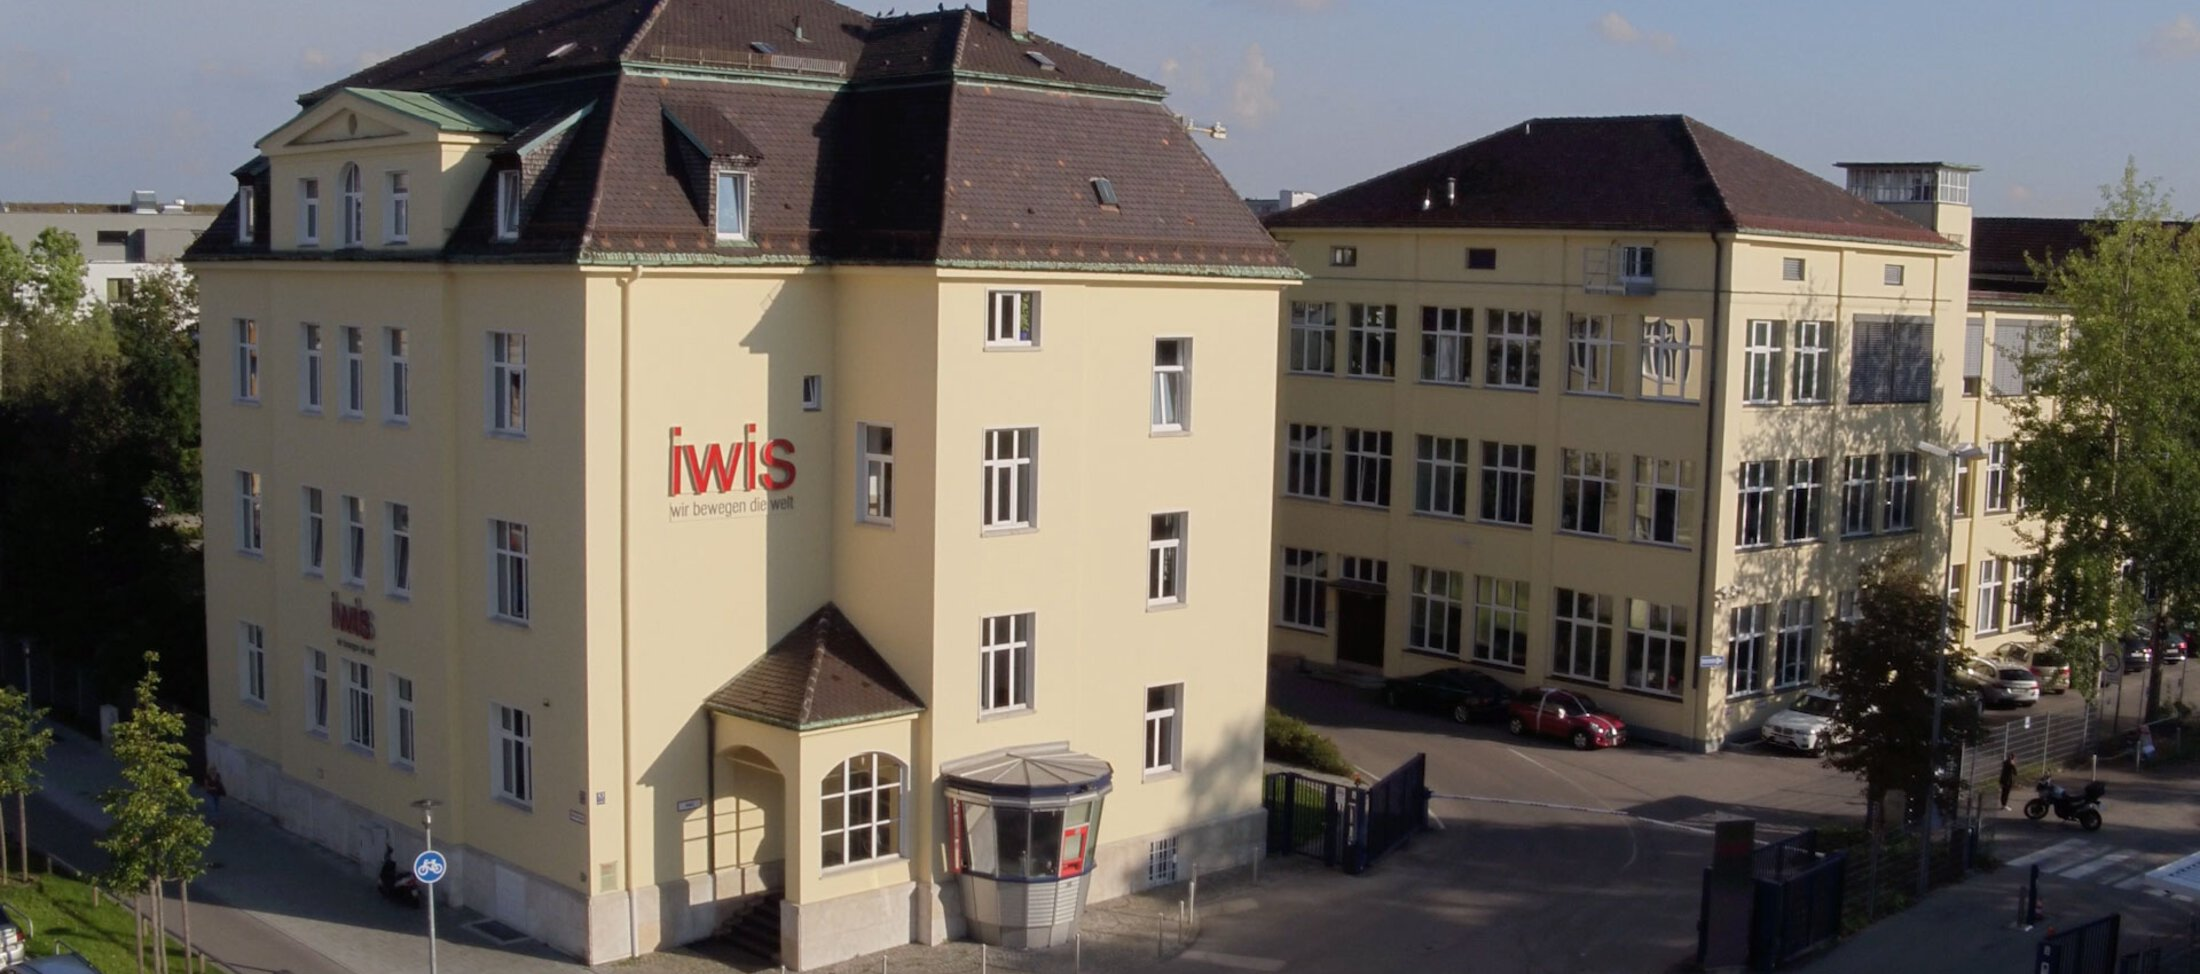 iwis international chain manufacturer